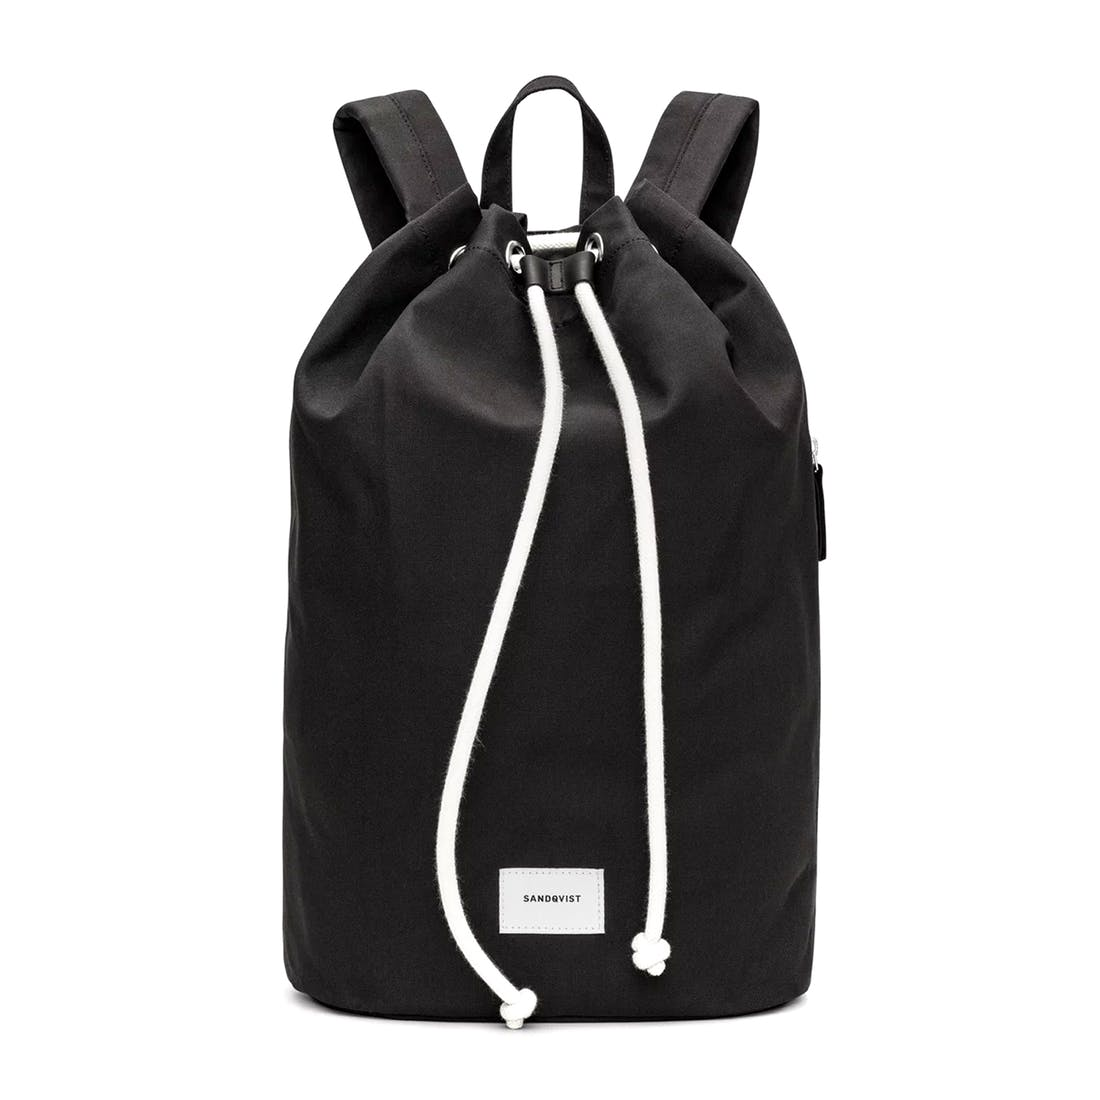 Sandqvist Evert Bucket Backpack - Black